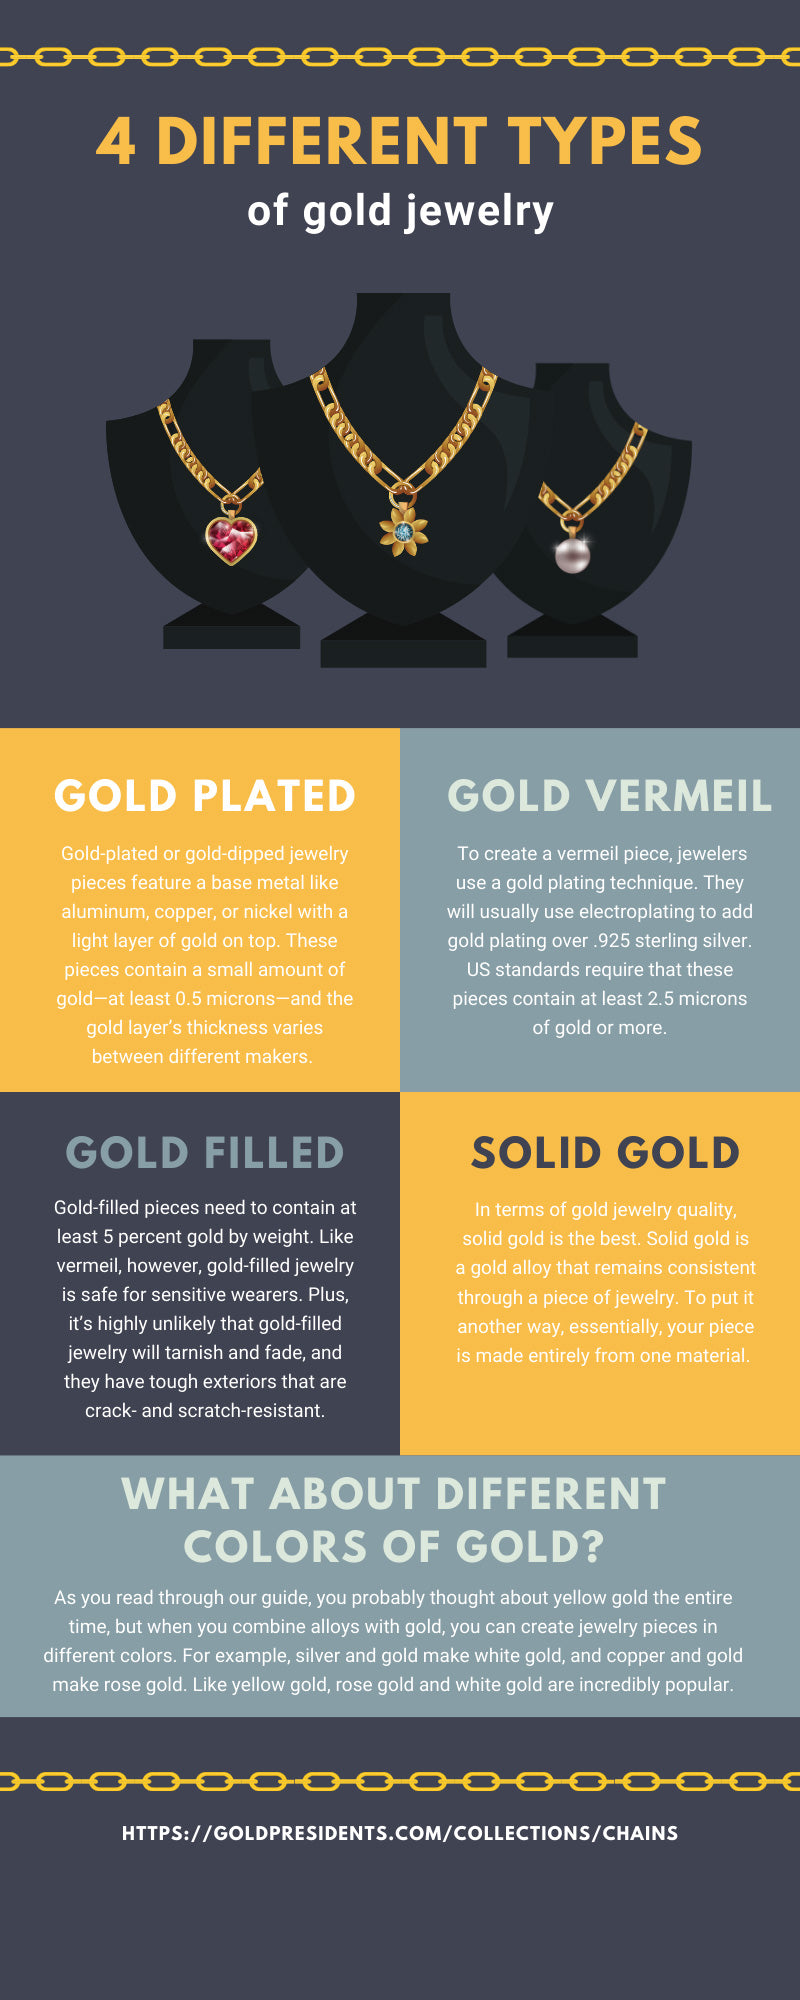 4 Different Types of Gold Jewelry